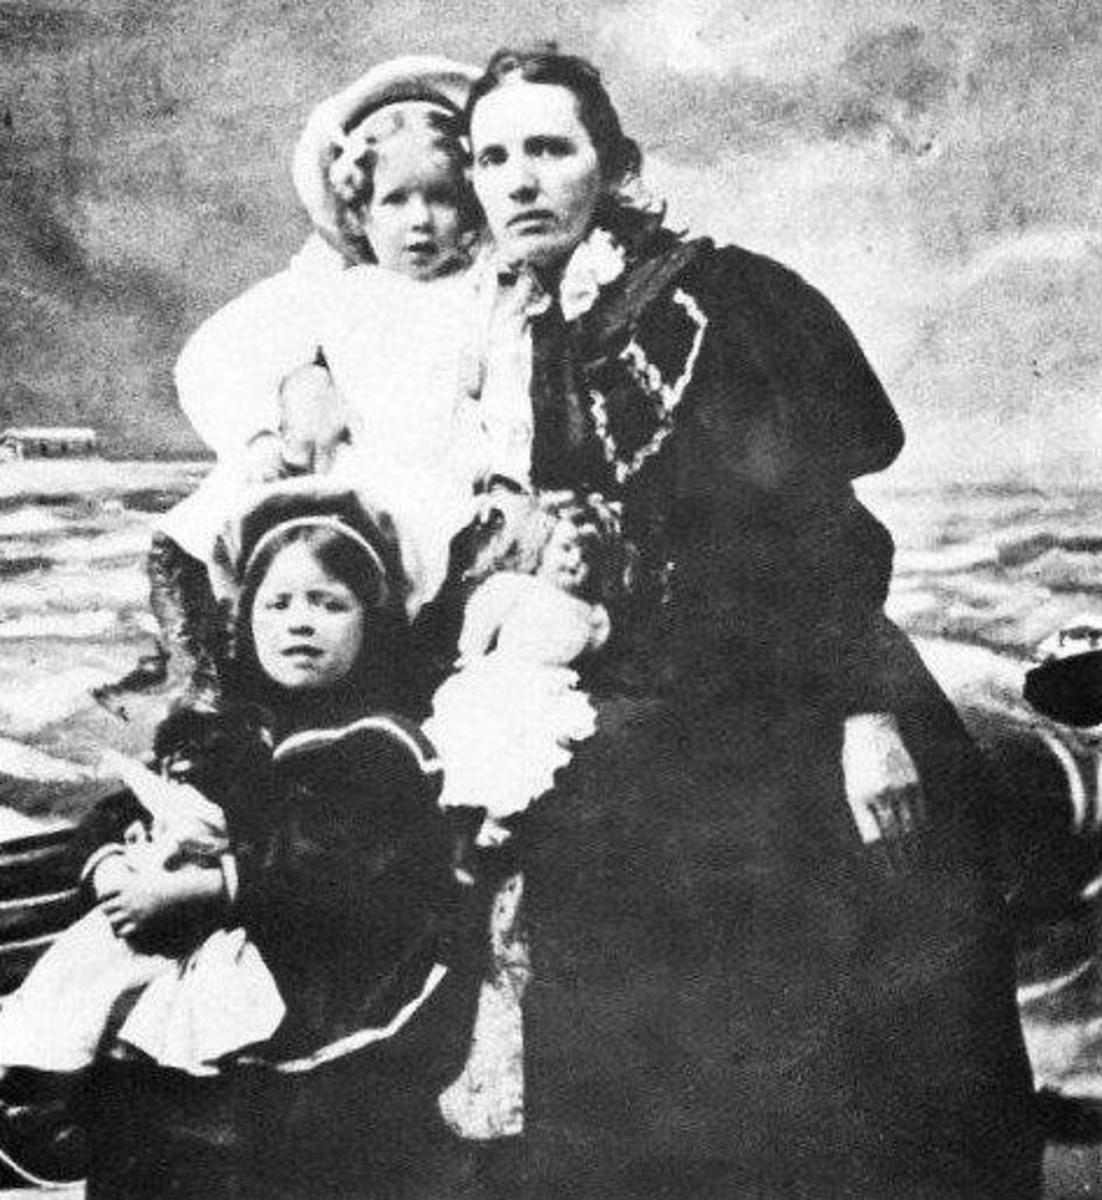 Martha Graham as a young girl with her mom and sister.